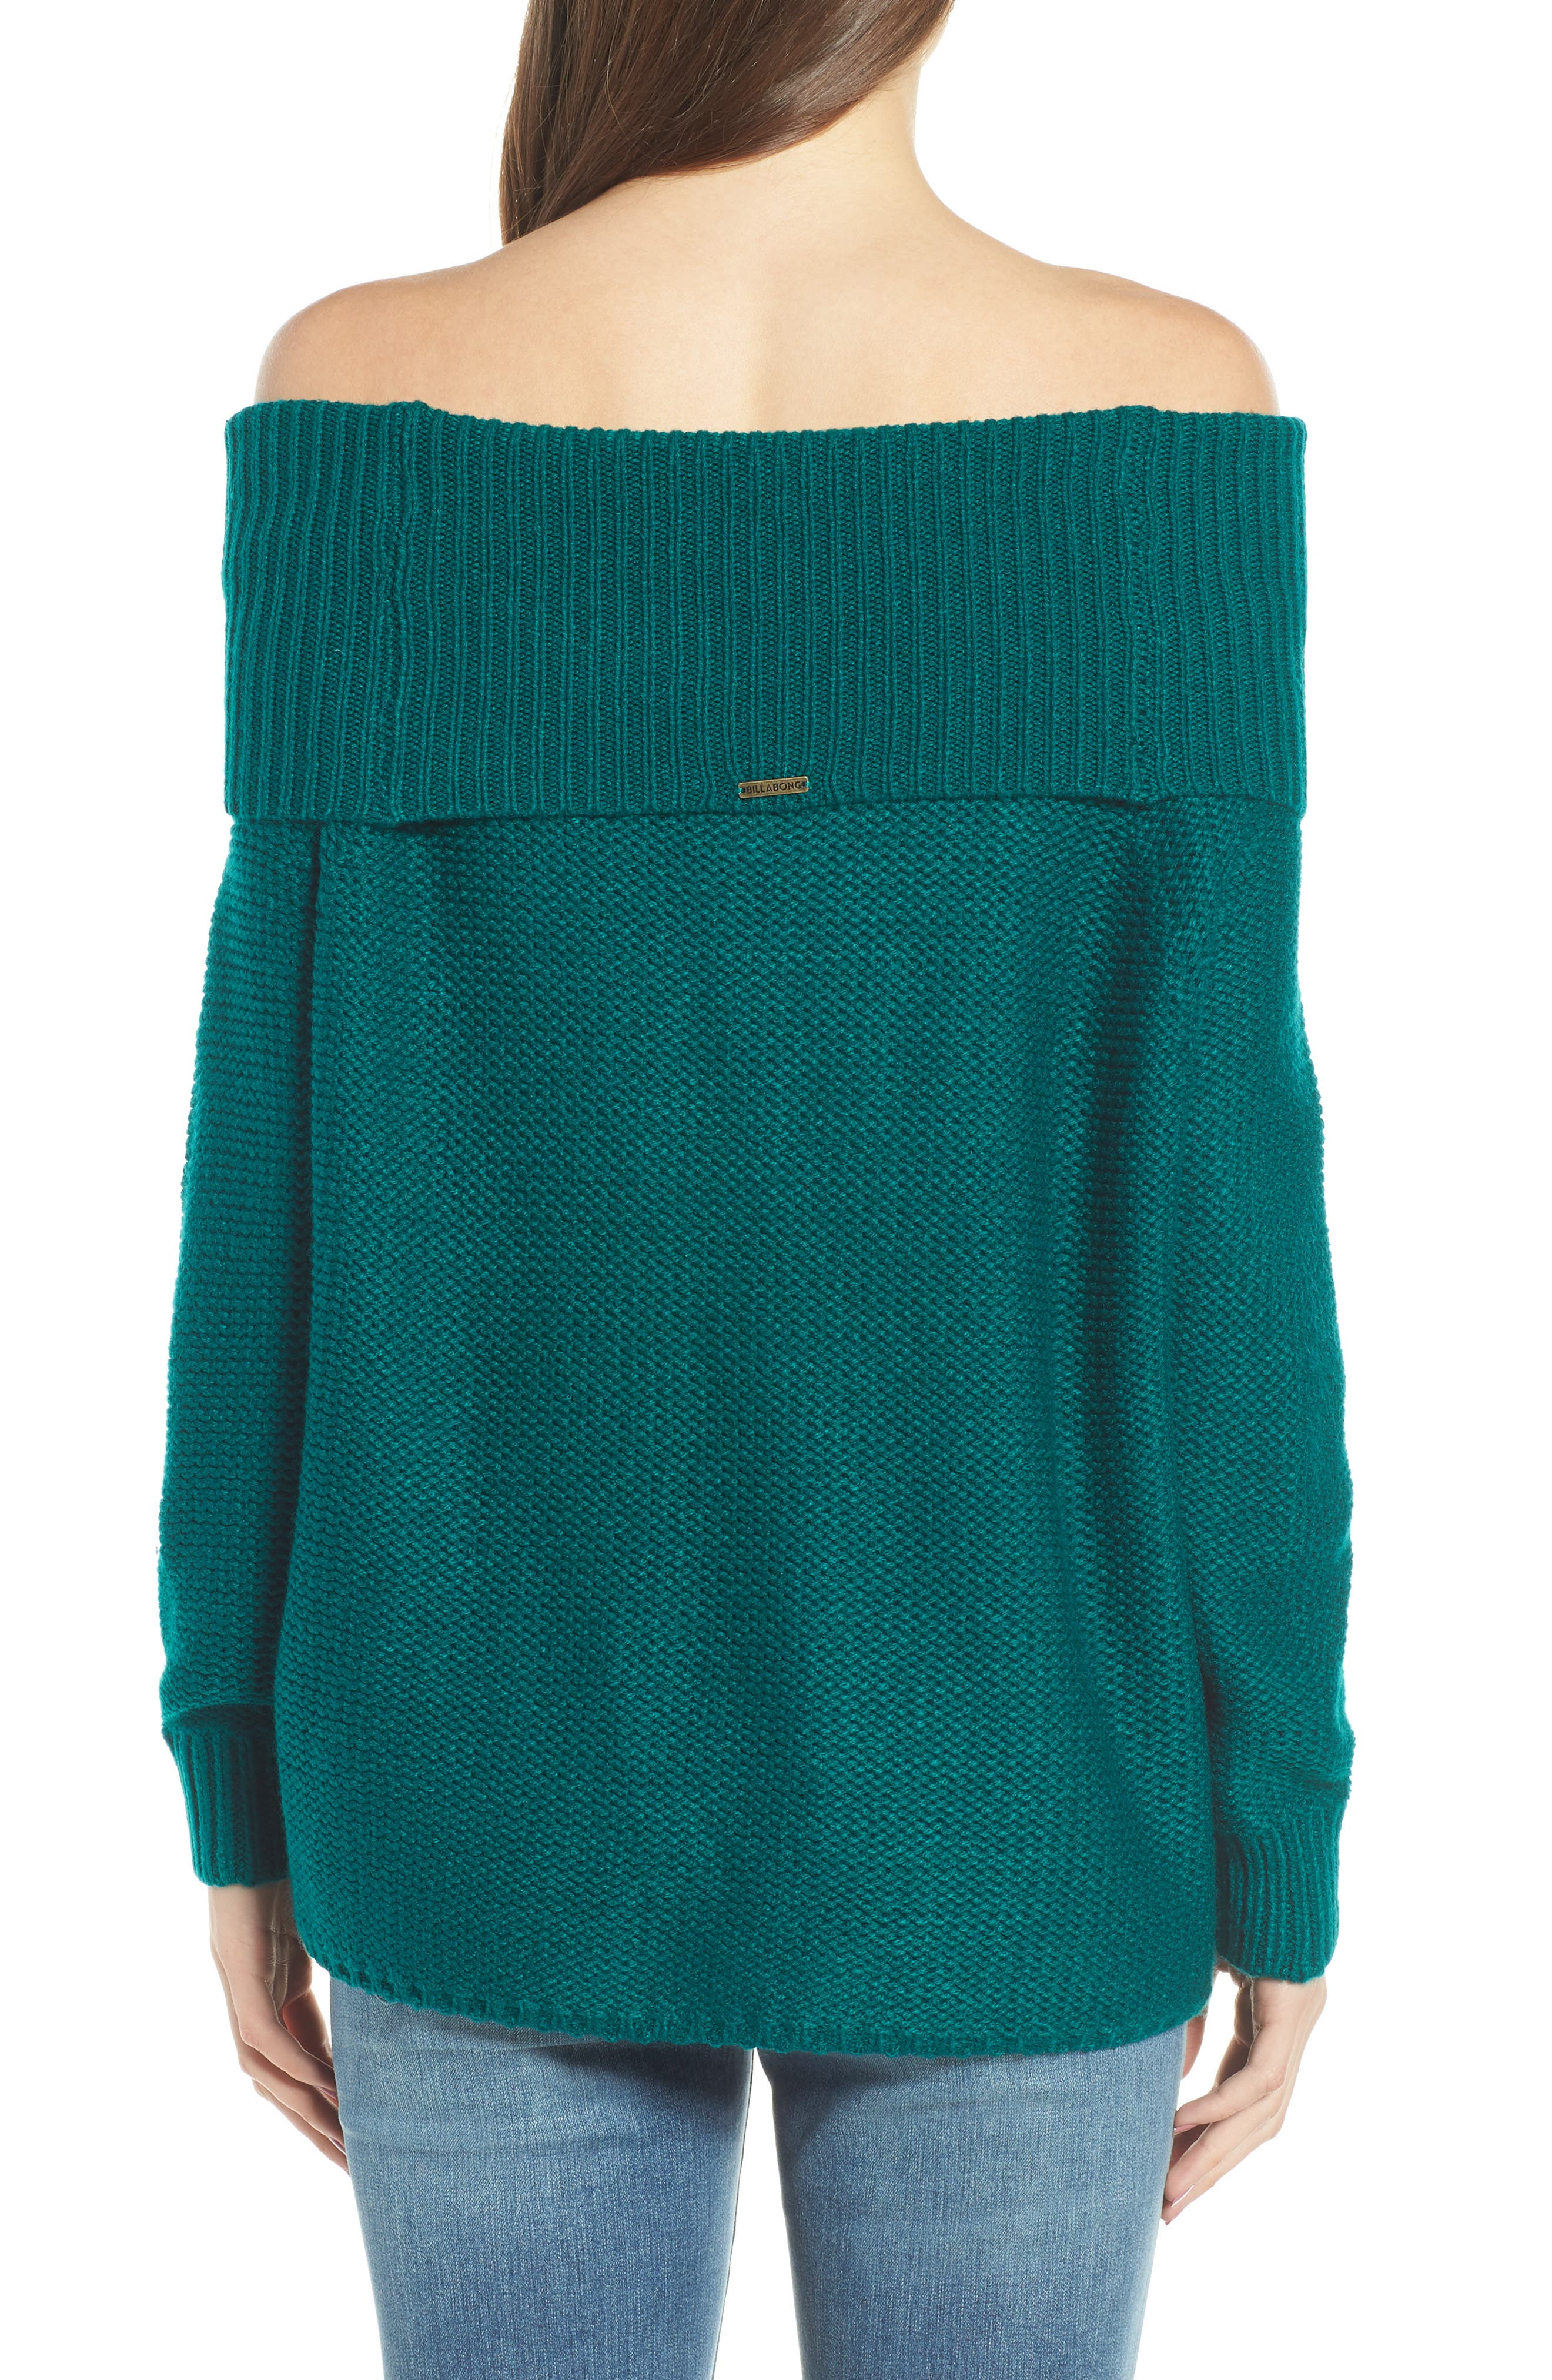 Off Shore Cable Knit Sweater,                             Alternate thumbnail 2, color,                             440